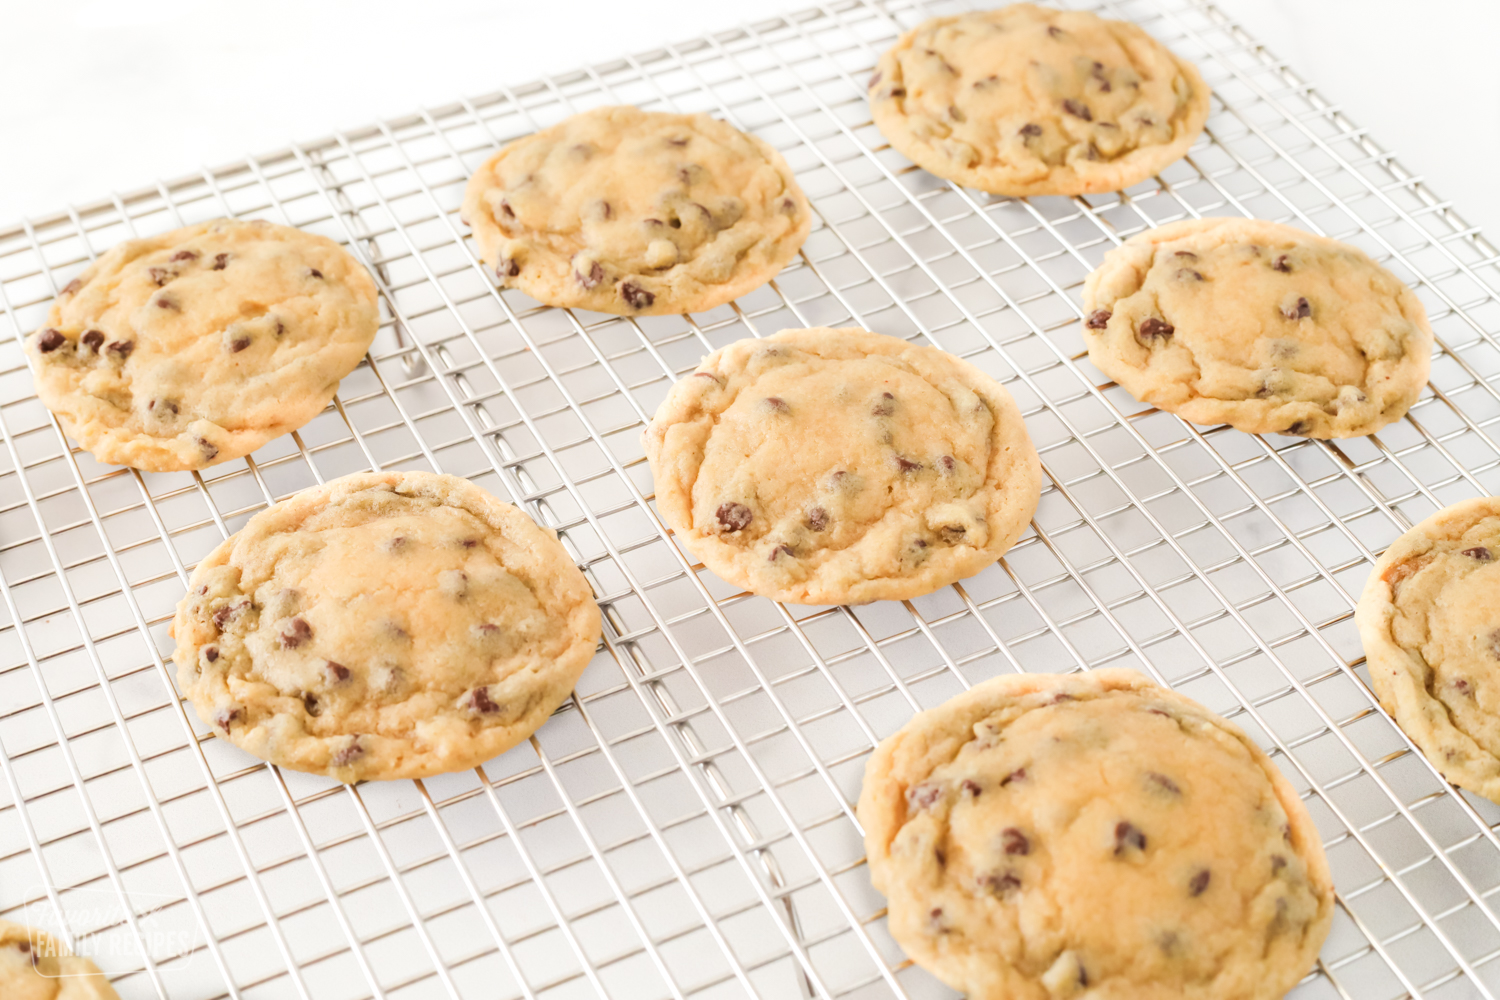 Bakery chocolate chip cookies on a cooling rack